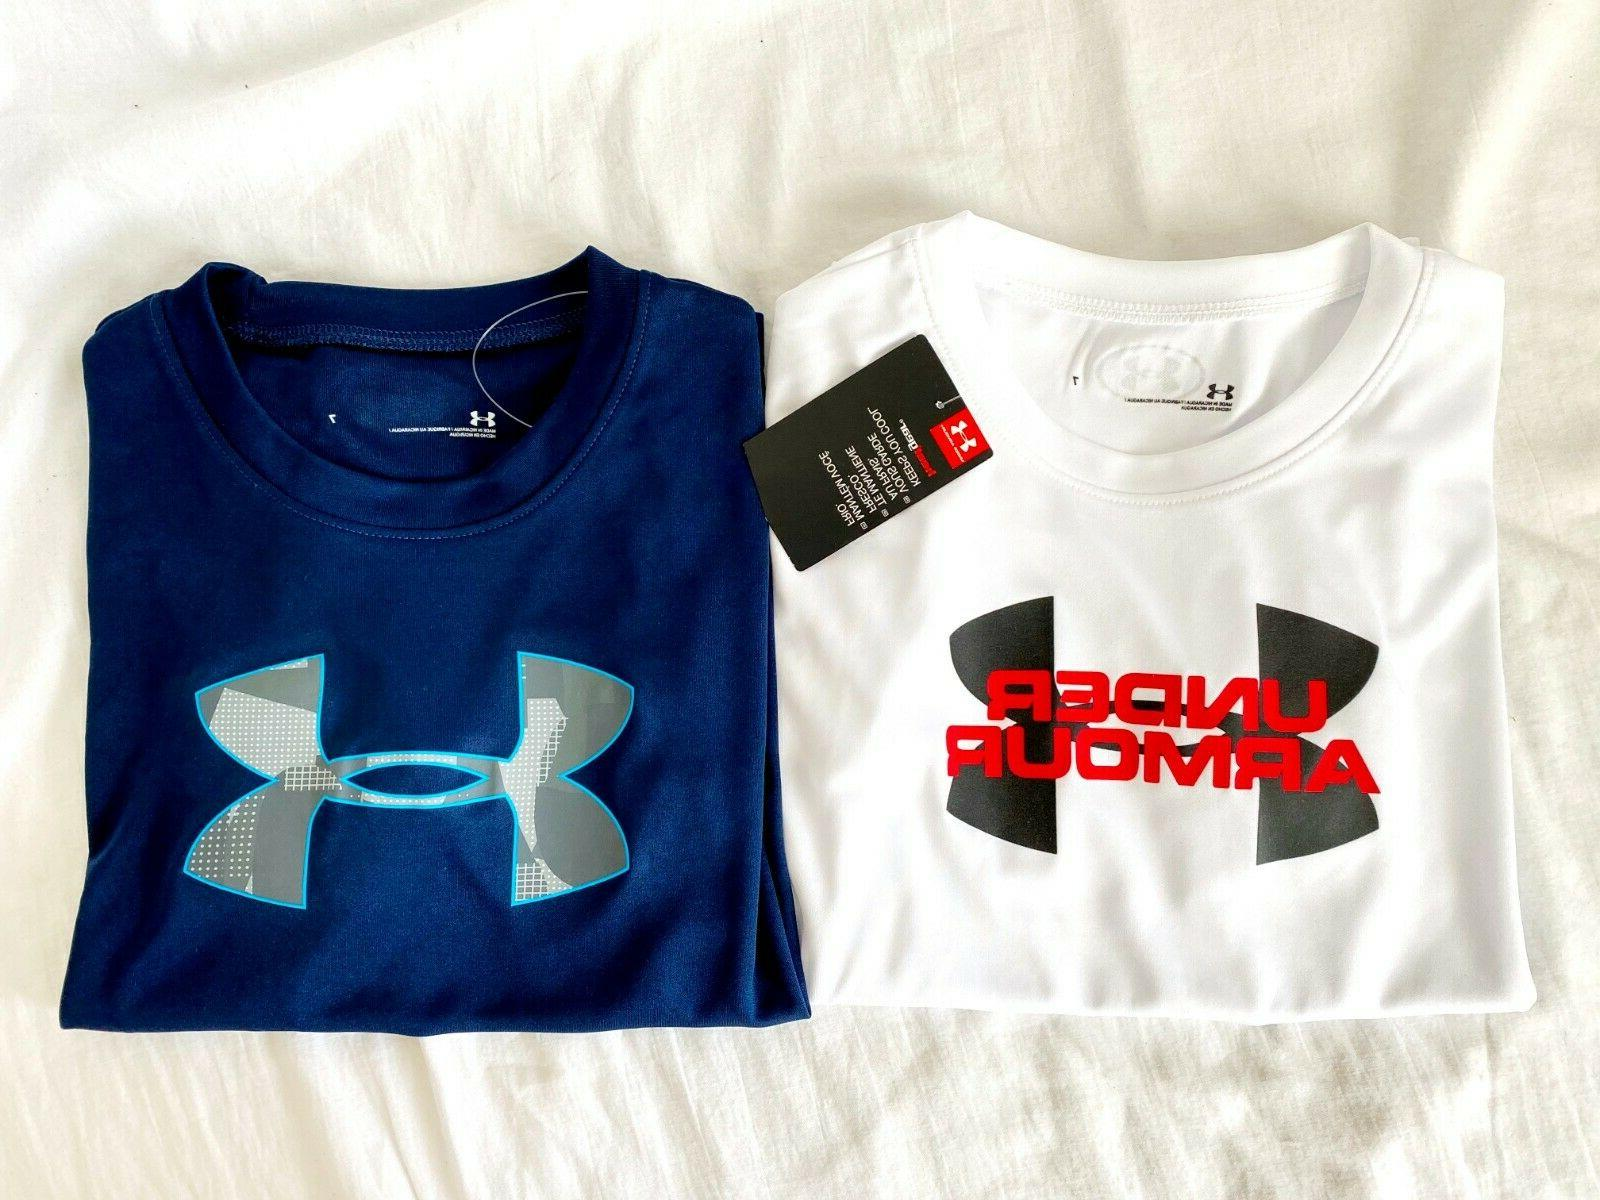 Lot of Armour Boy's Youth Heatgear Loose Sz 6 or Brand New